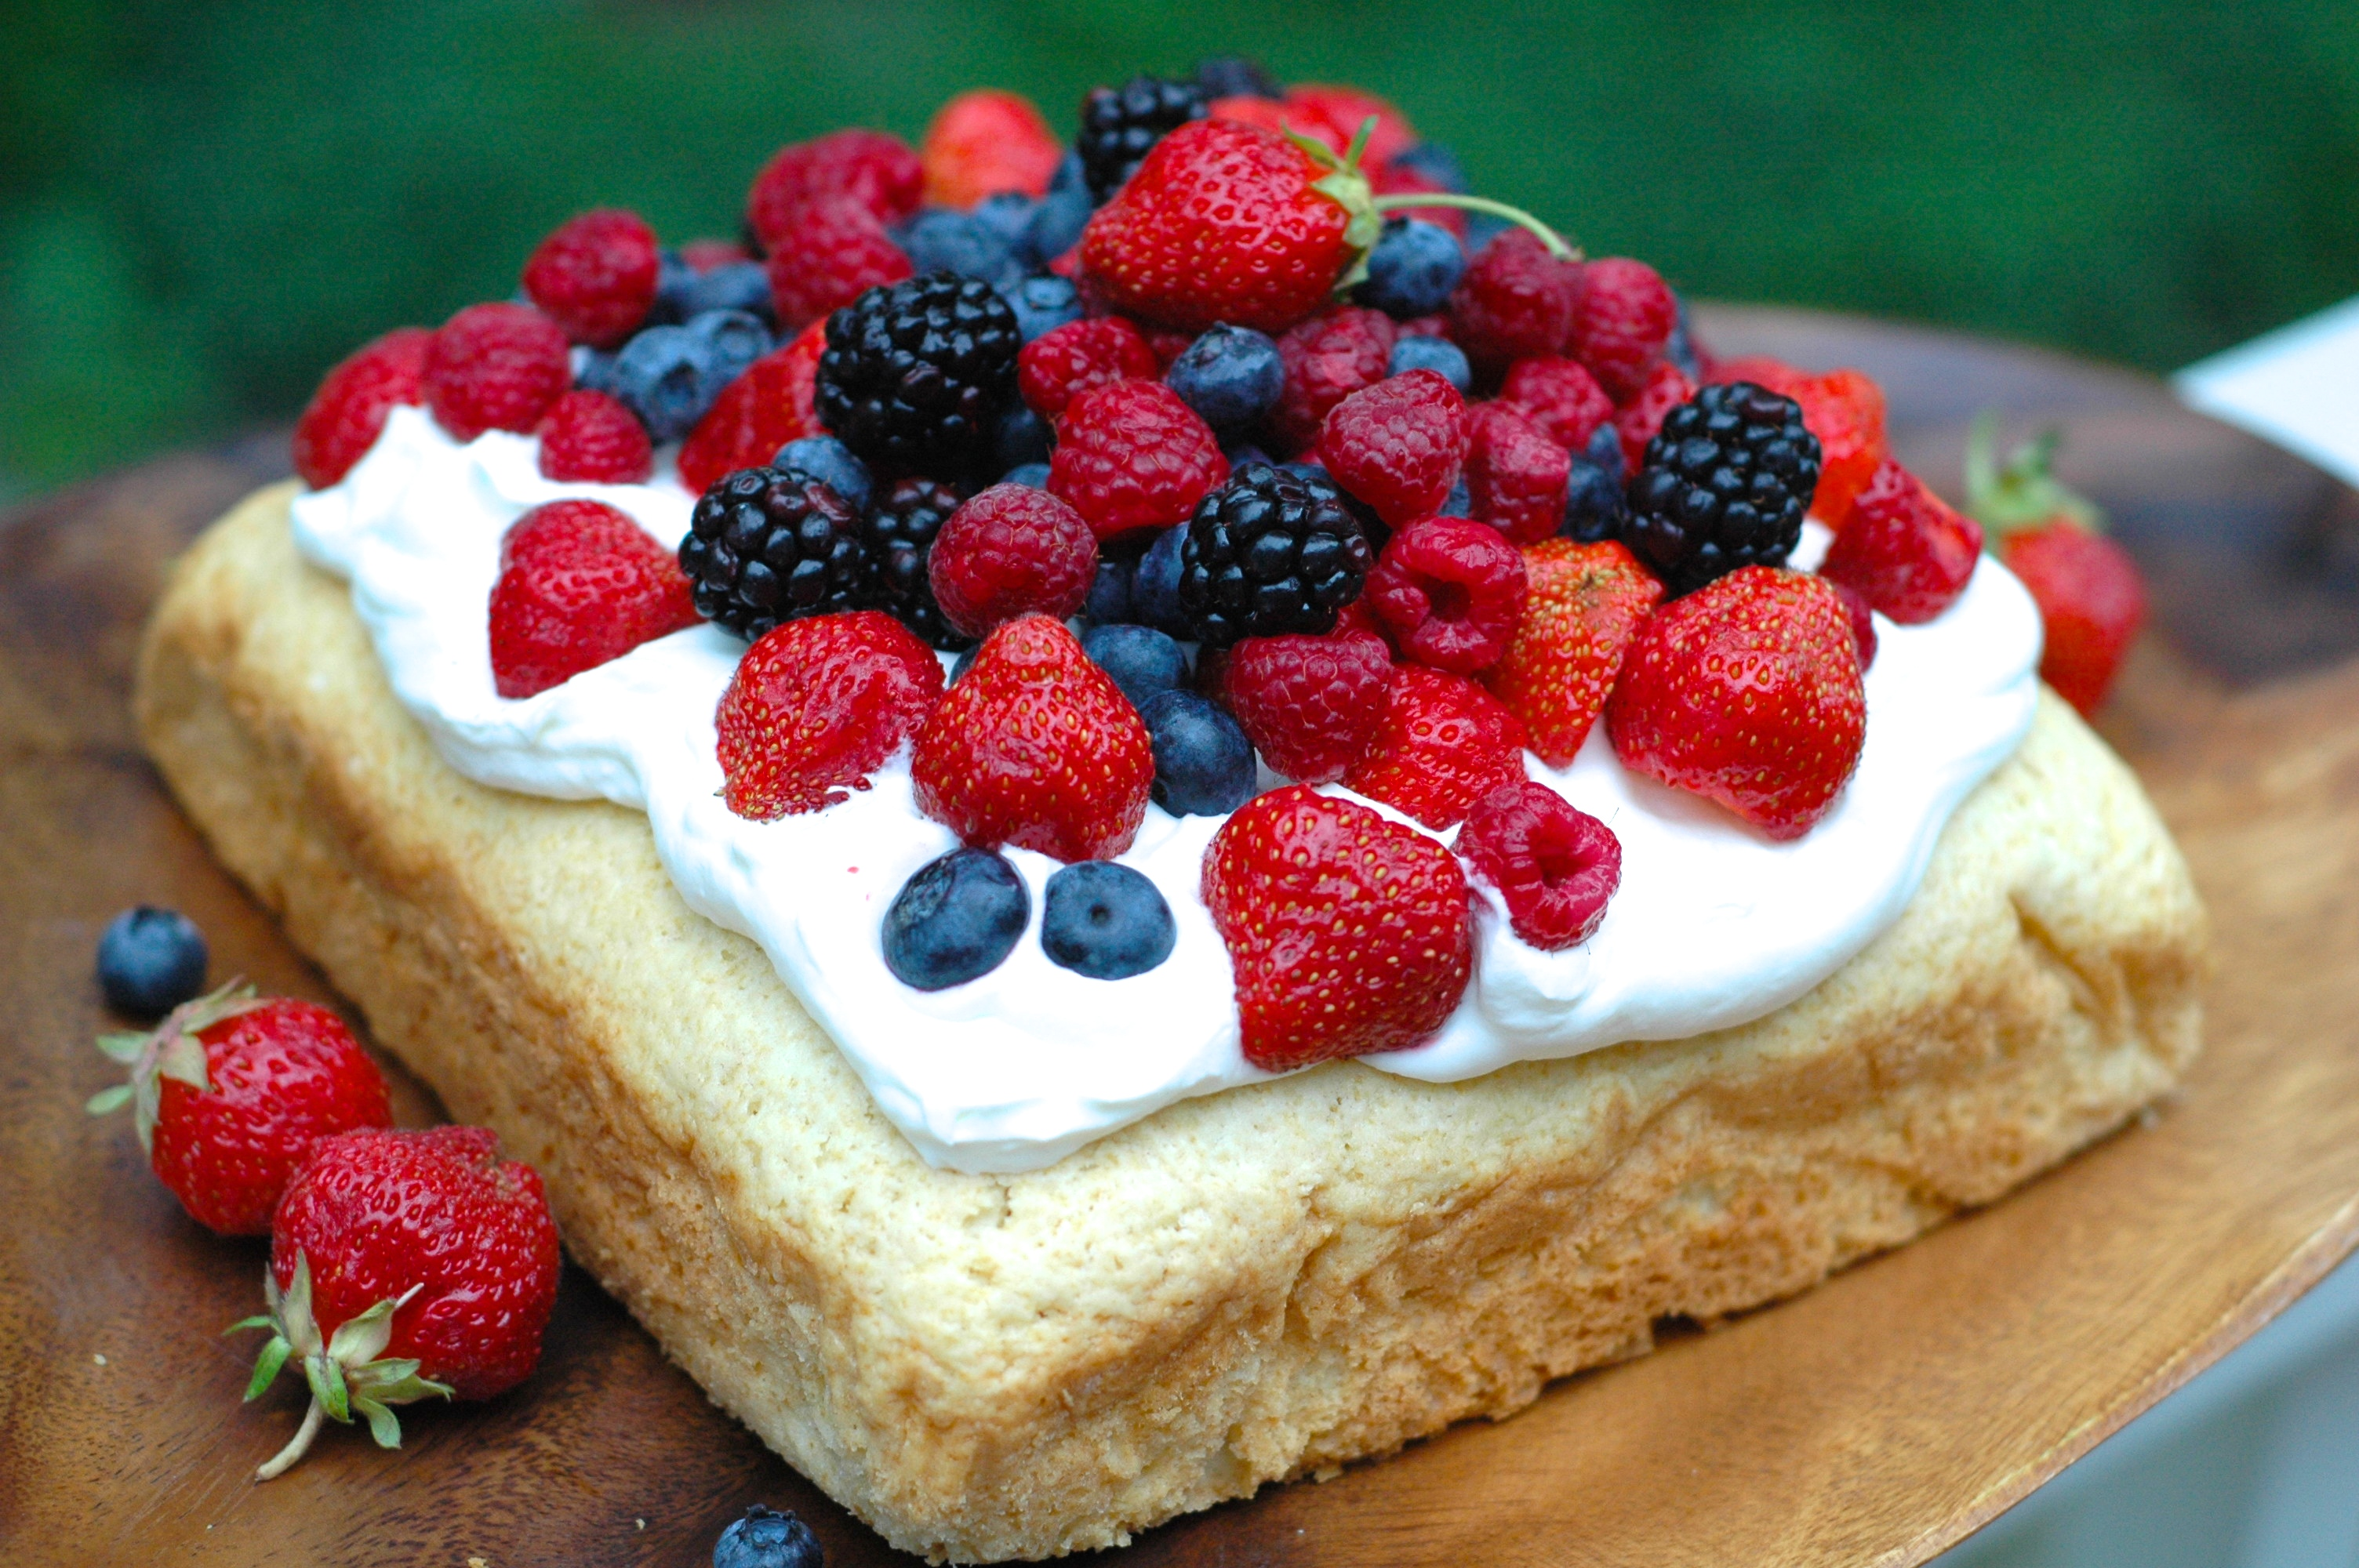 Party Cake with Fresh Whipped Cream and Berries